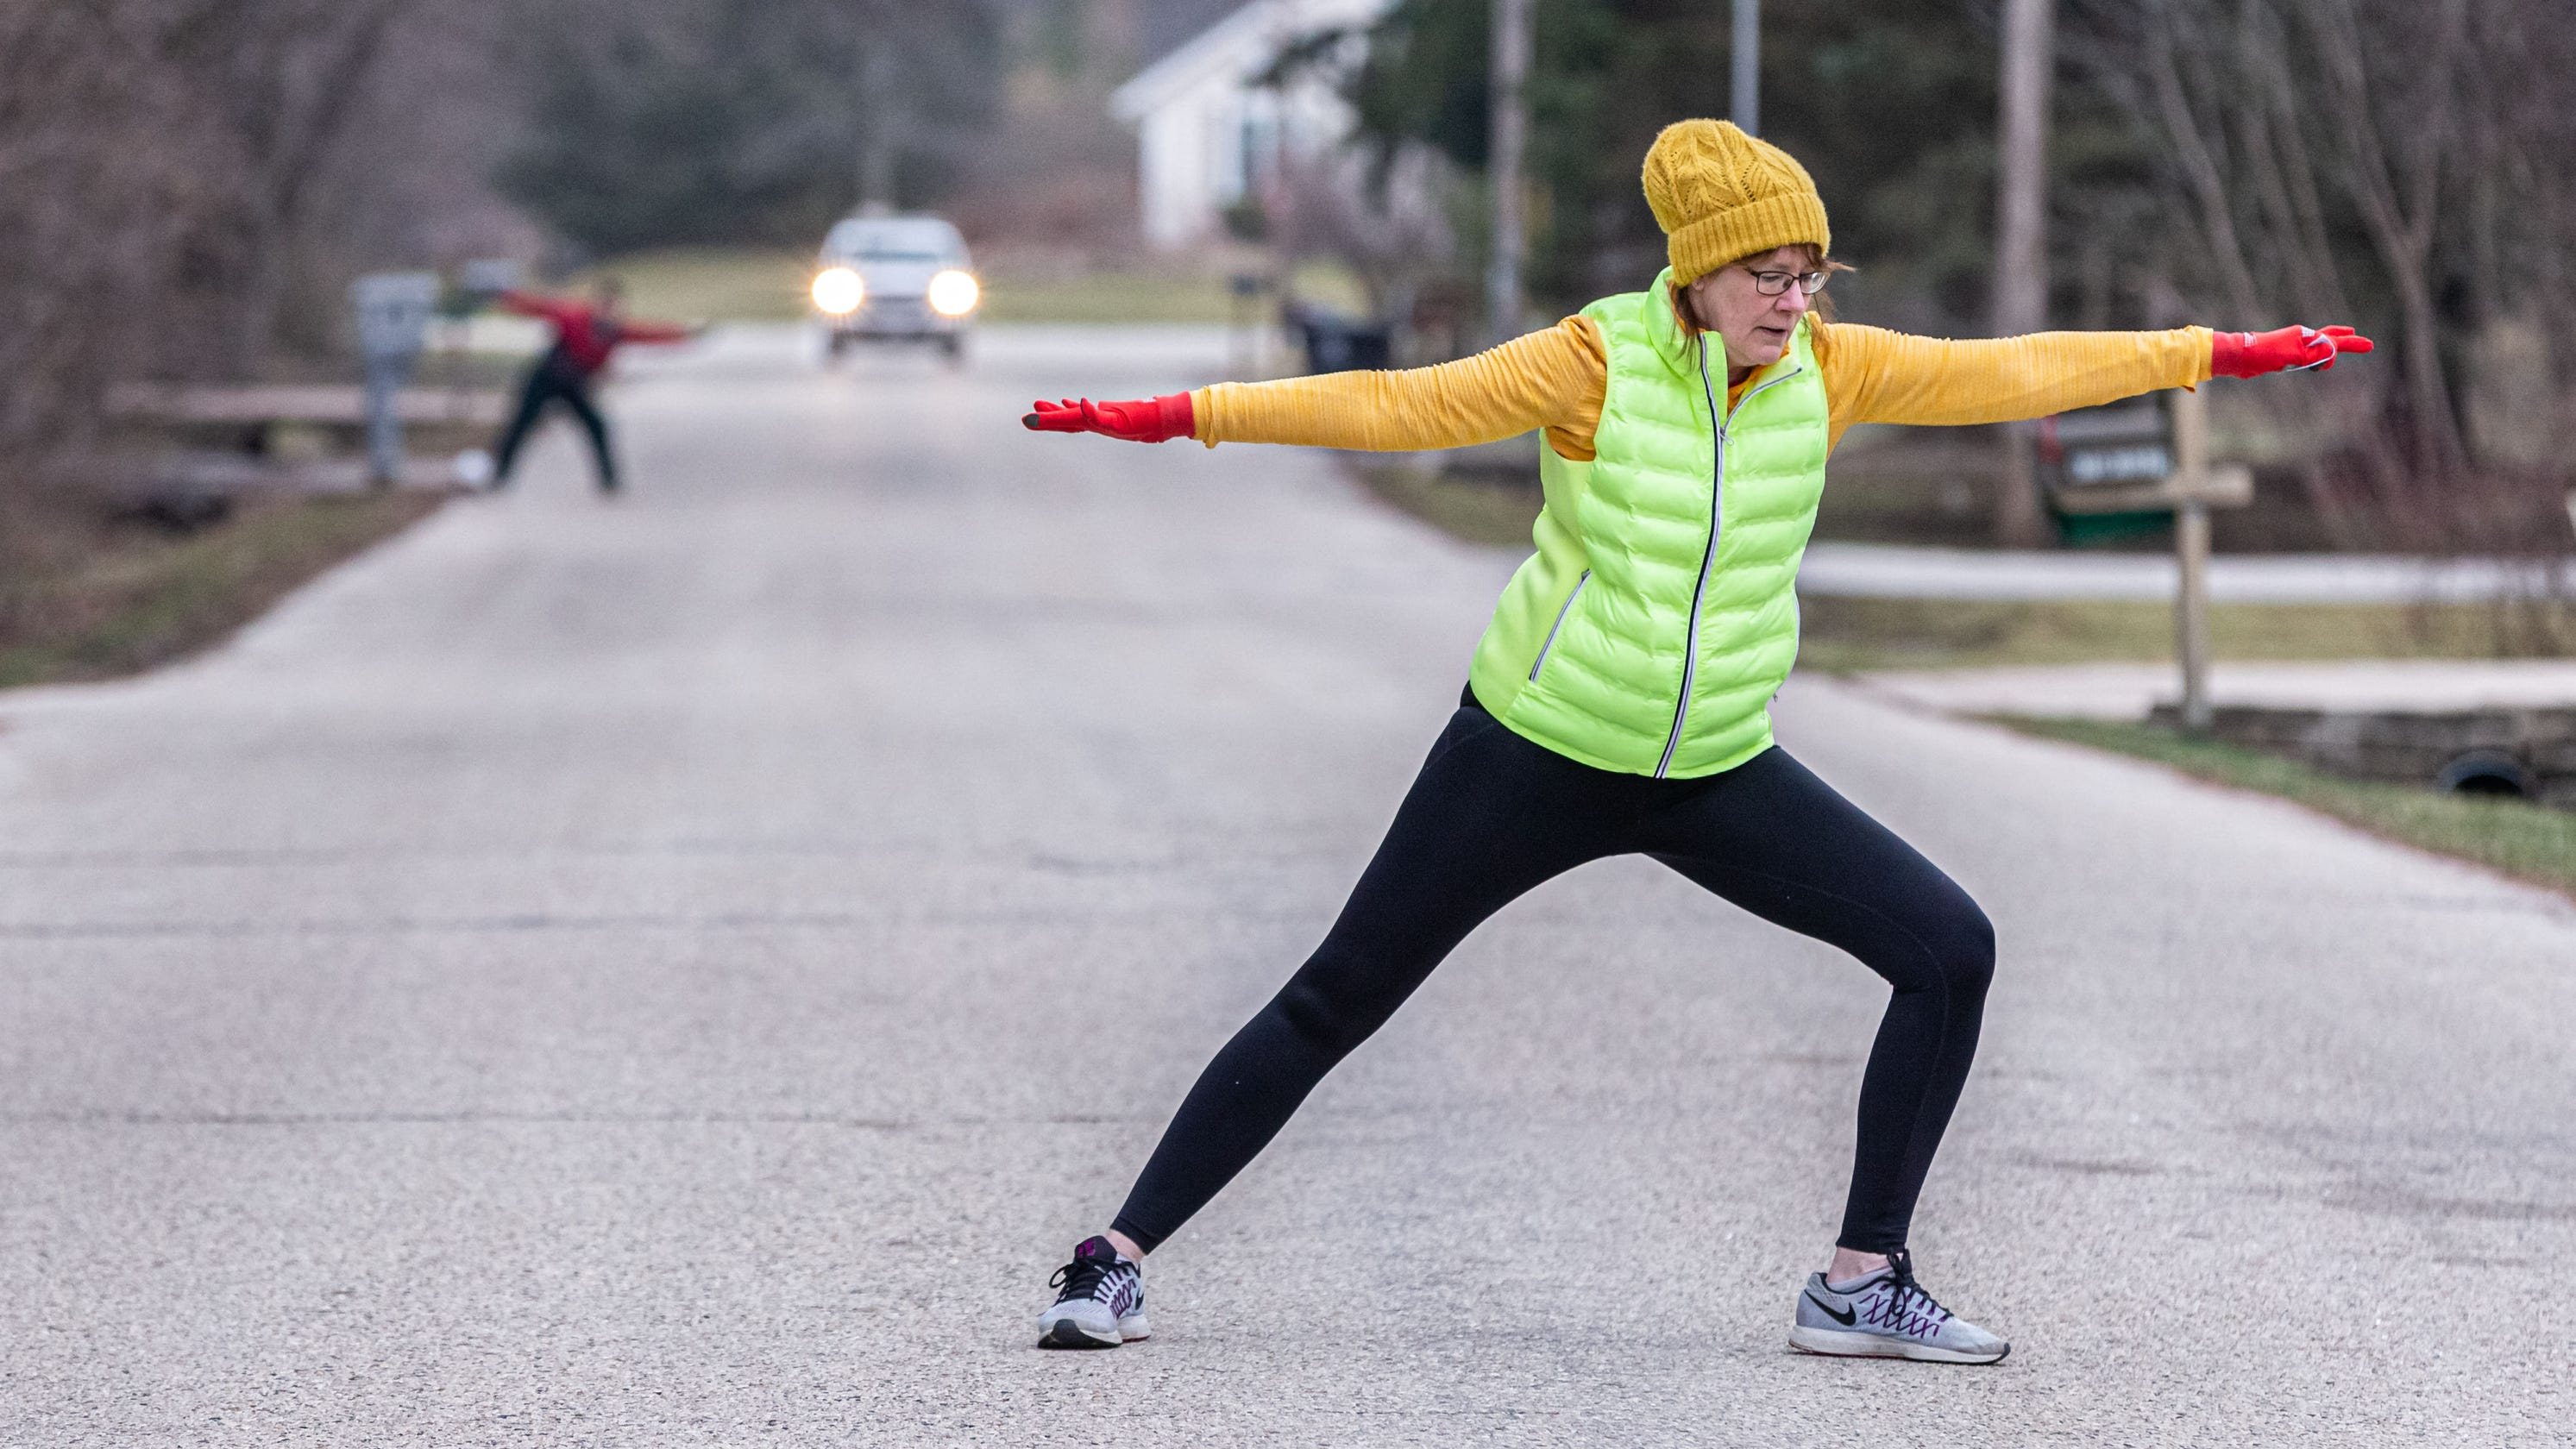 Weight loss diet You're not 'too busy' to stay active during coronavirus quarantine: Health experts worry about blood clots, weight gain and more thumbnail